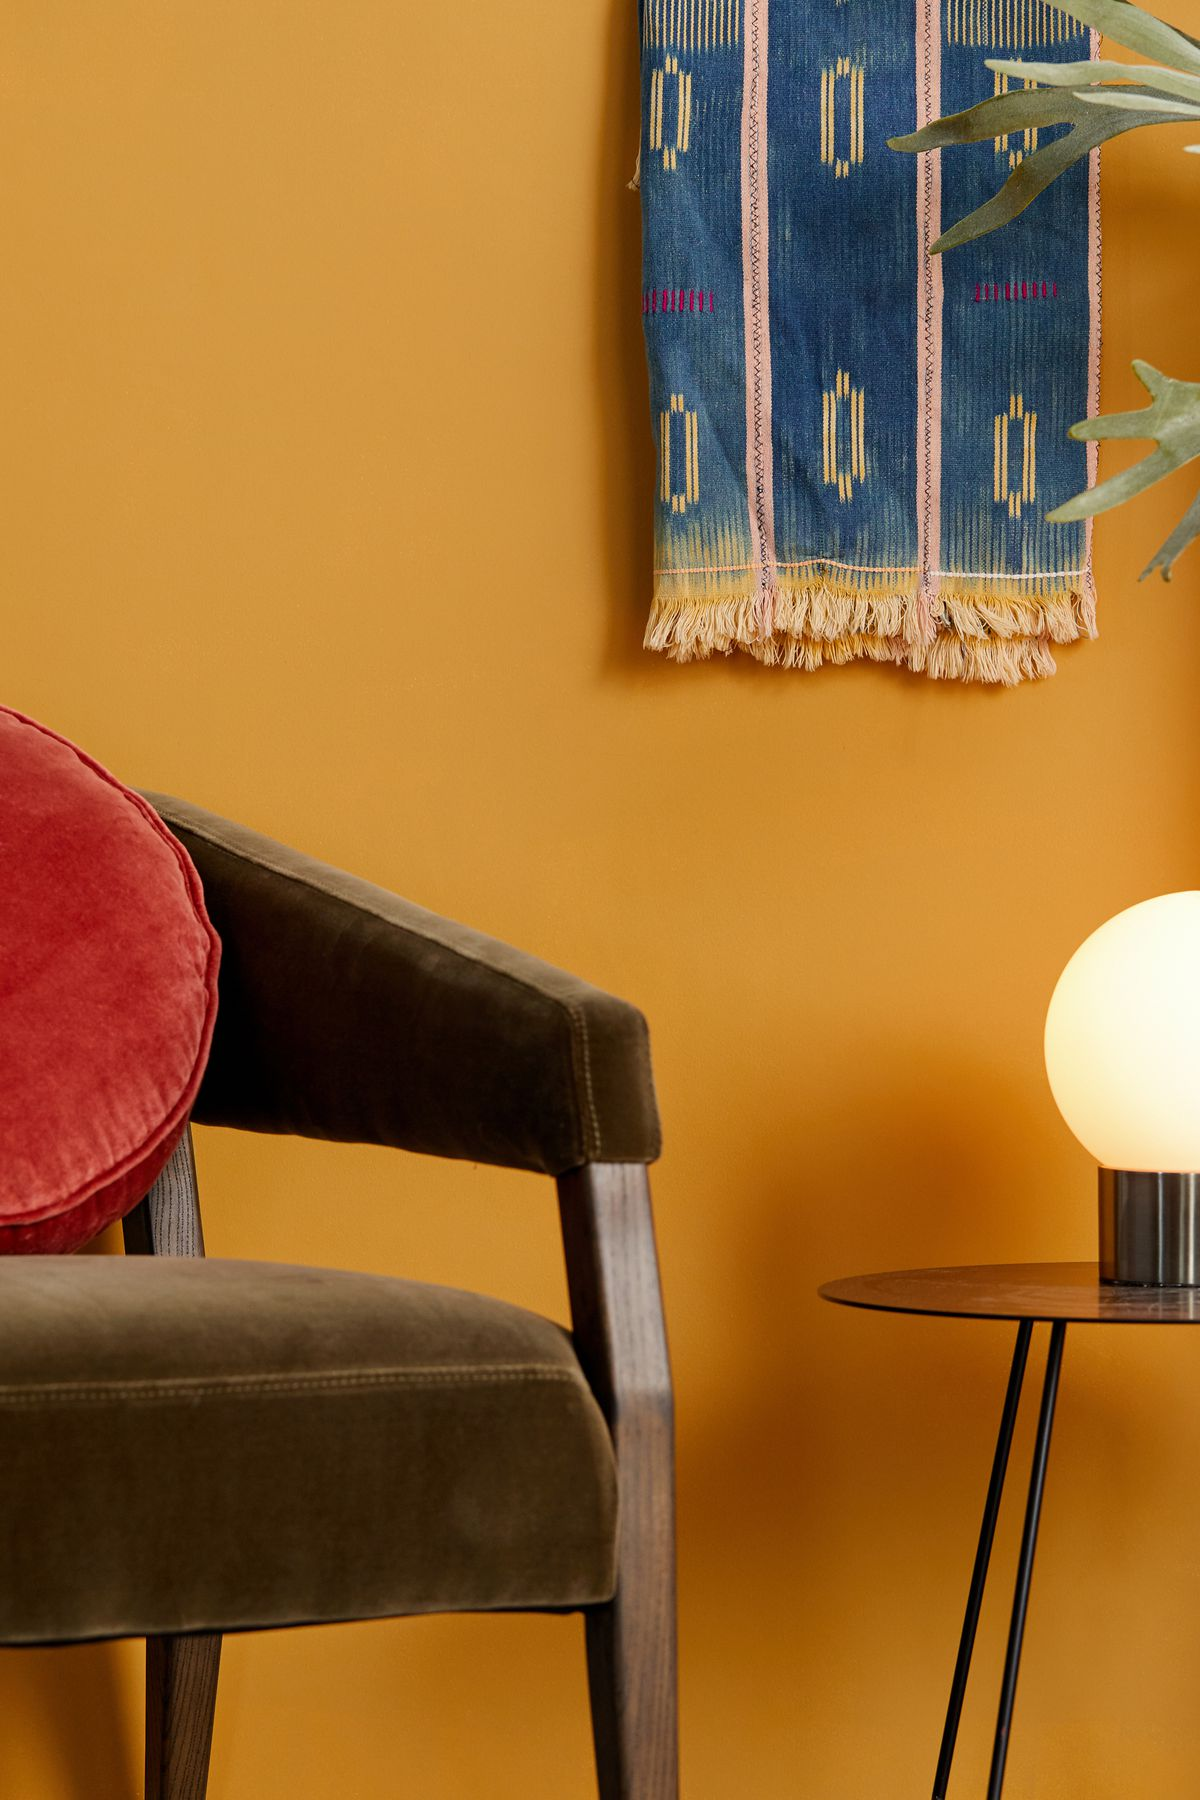 Chair and lamp in front of yellow wall